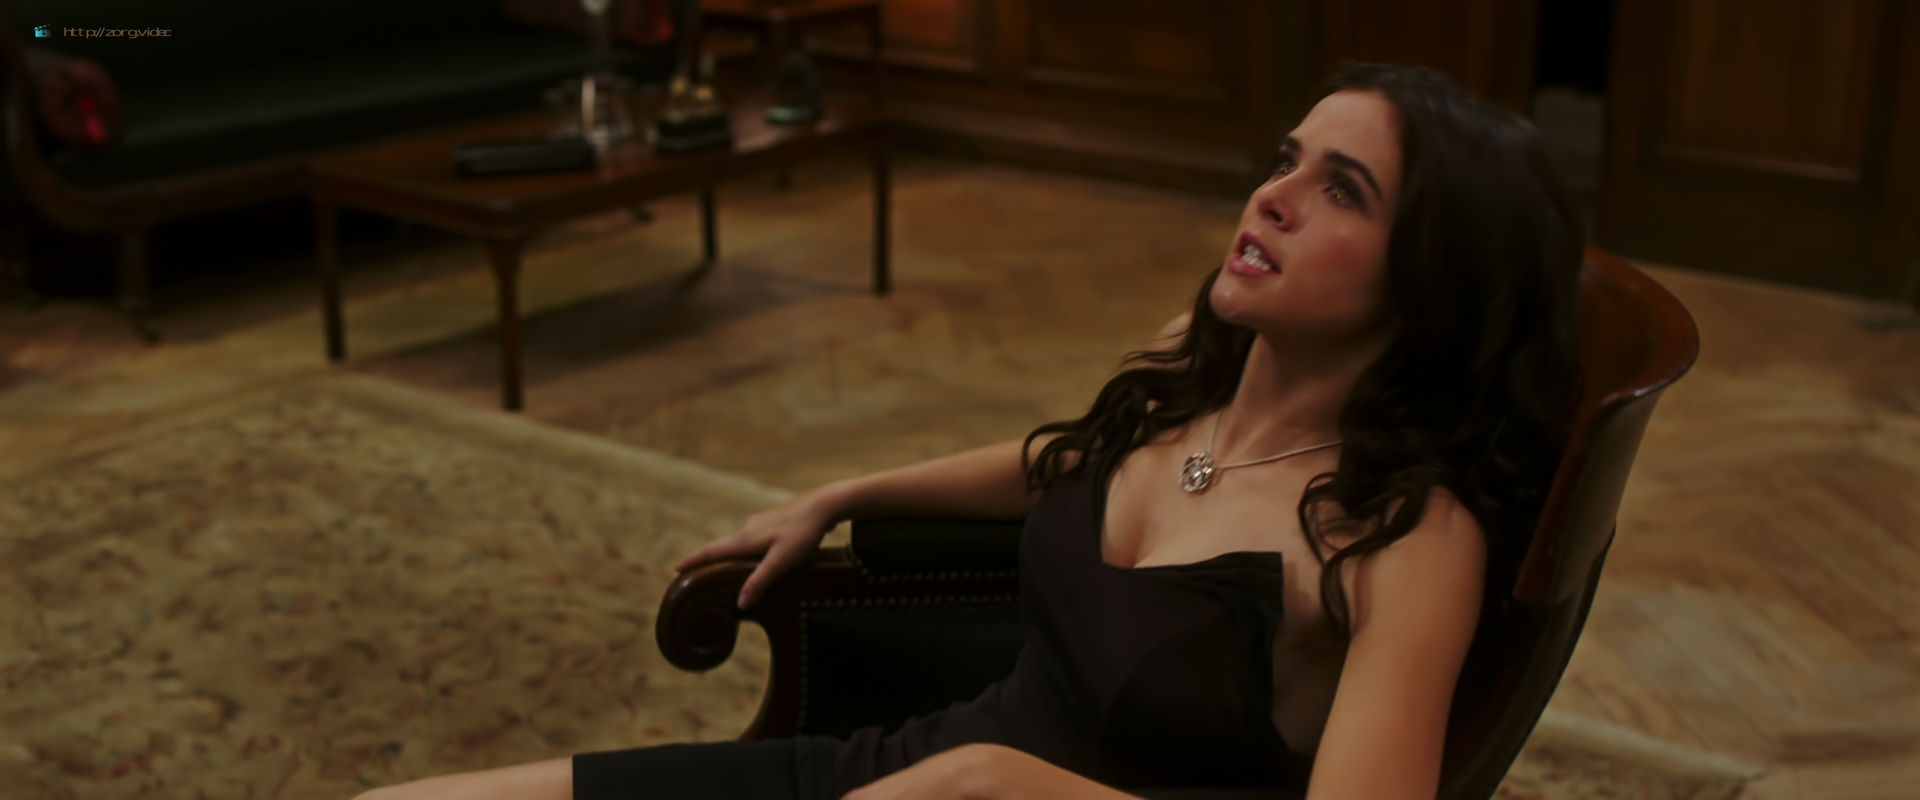 Zoey Deutch hot and sexy in black lingerie and some mild sex in - Vampire Academy (2014) HD 1080p BluRay (10)